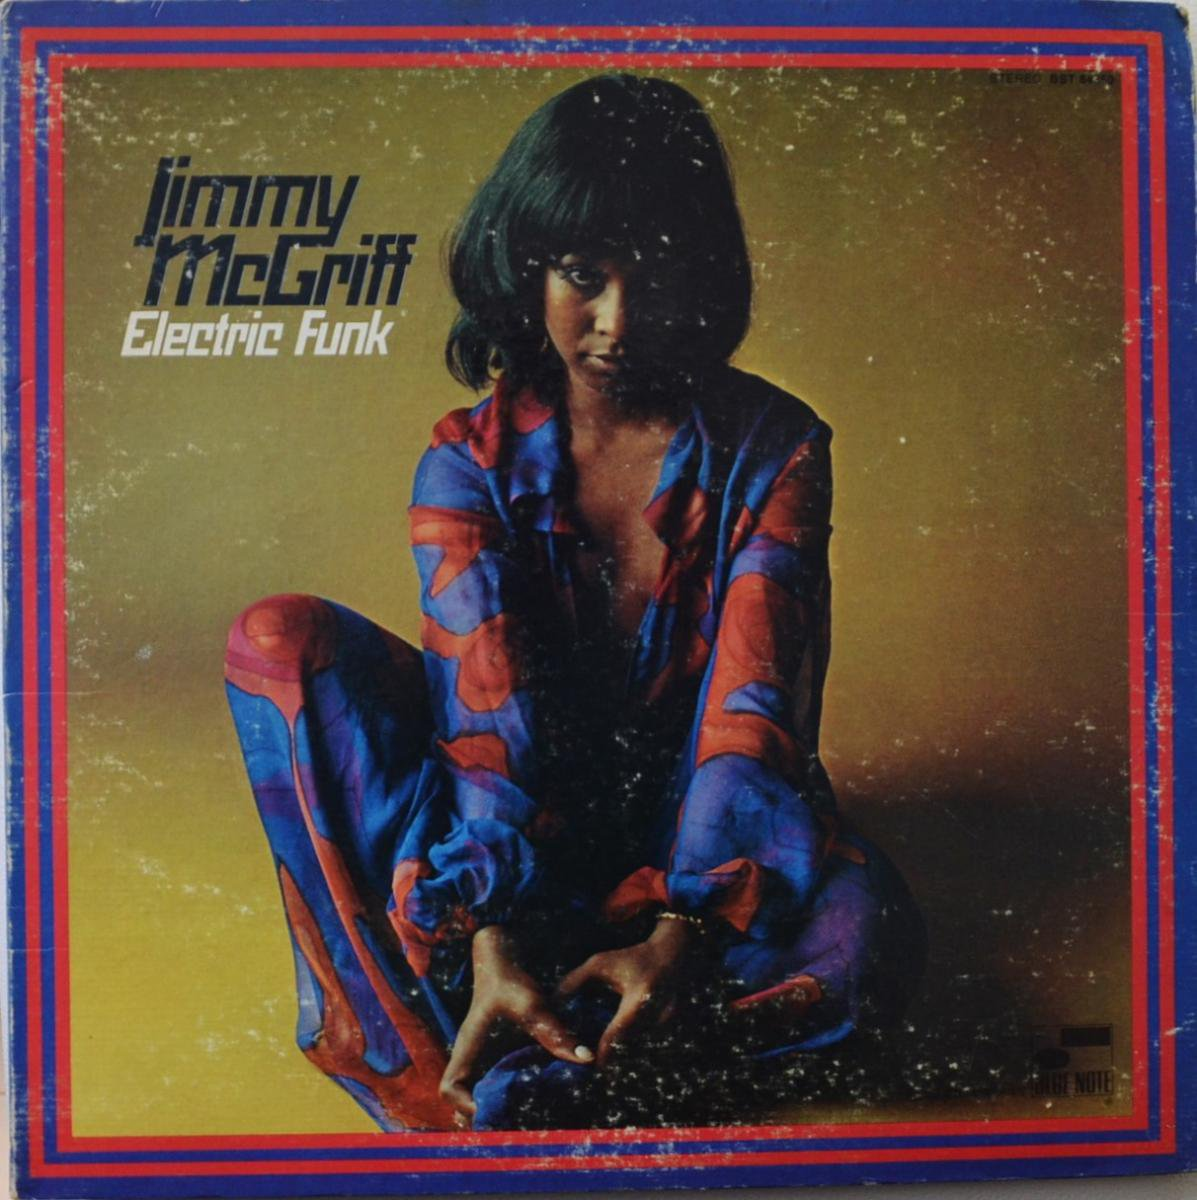 JIMMY MCGRIFF / ELECTRIC FUNK (LP)